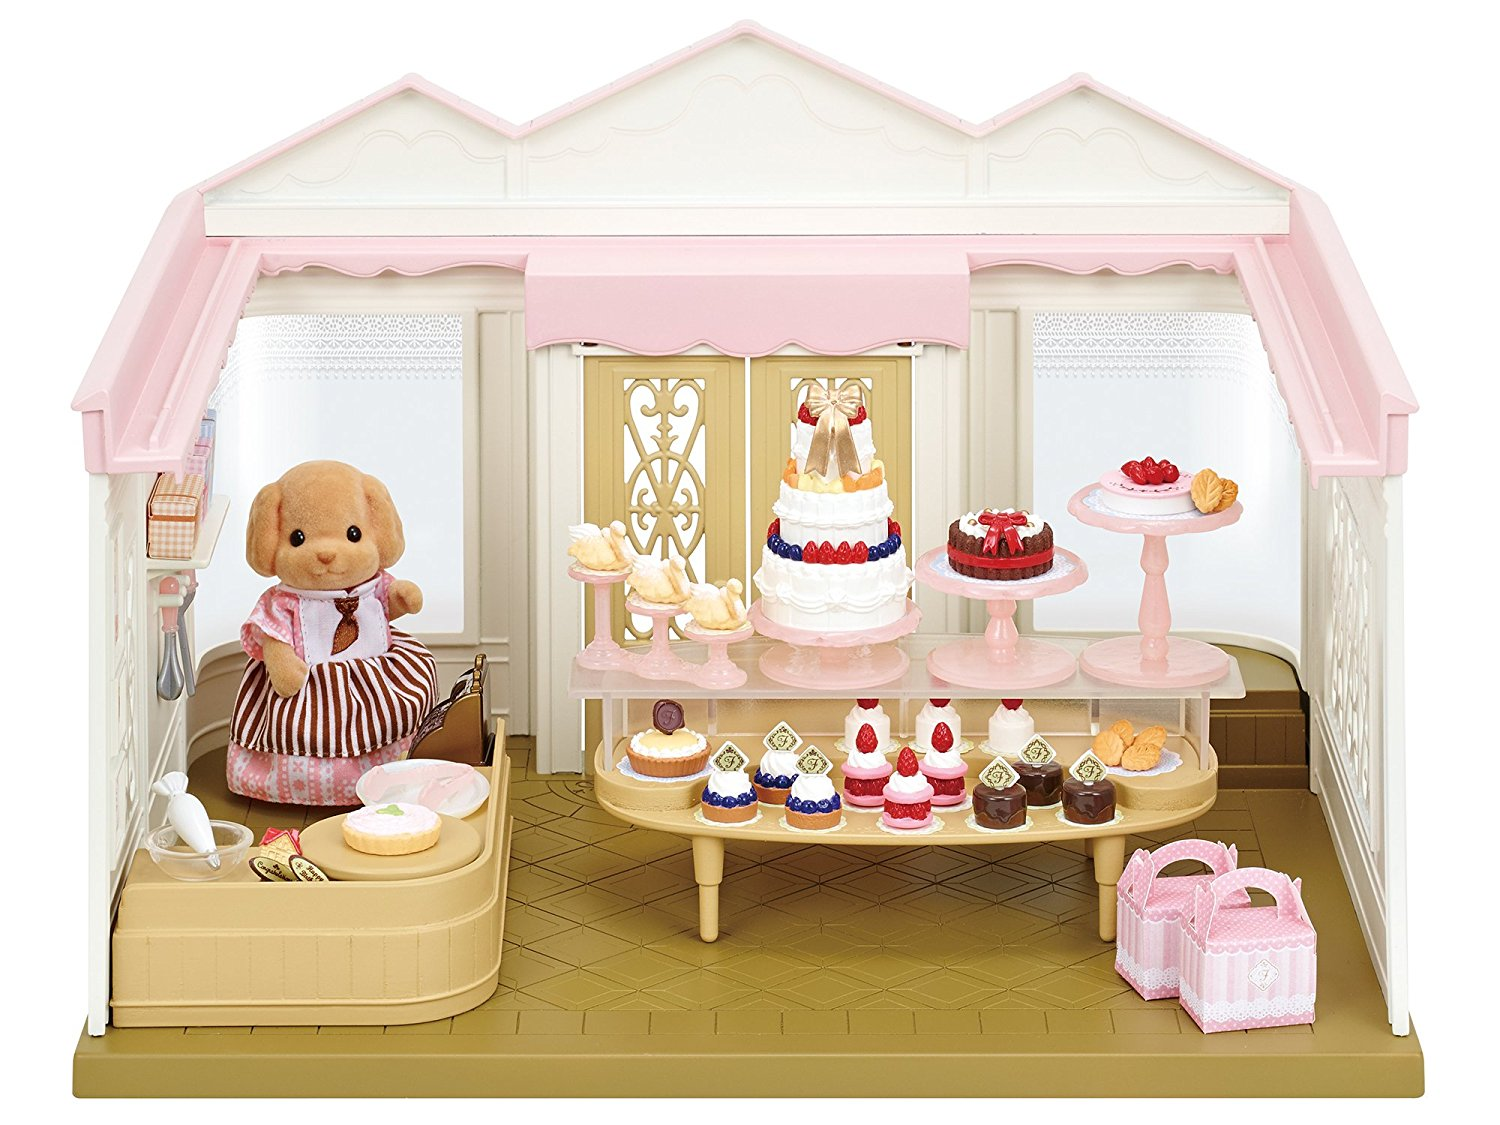 CALICO CRITTERS #CC1739 Village Cake Shop - New Factory Sealed